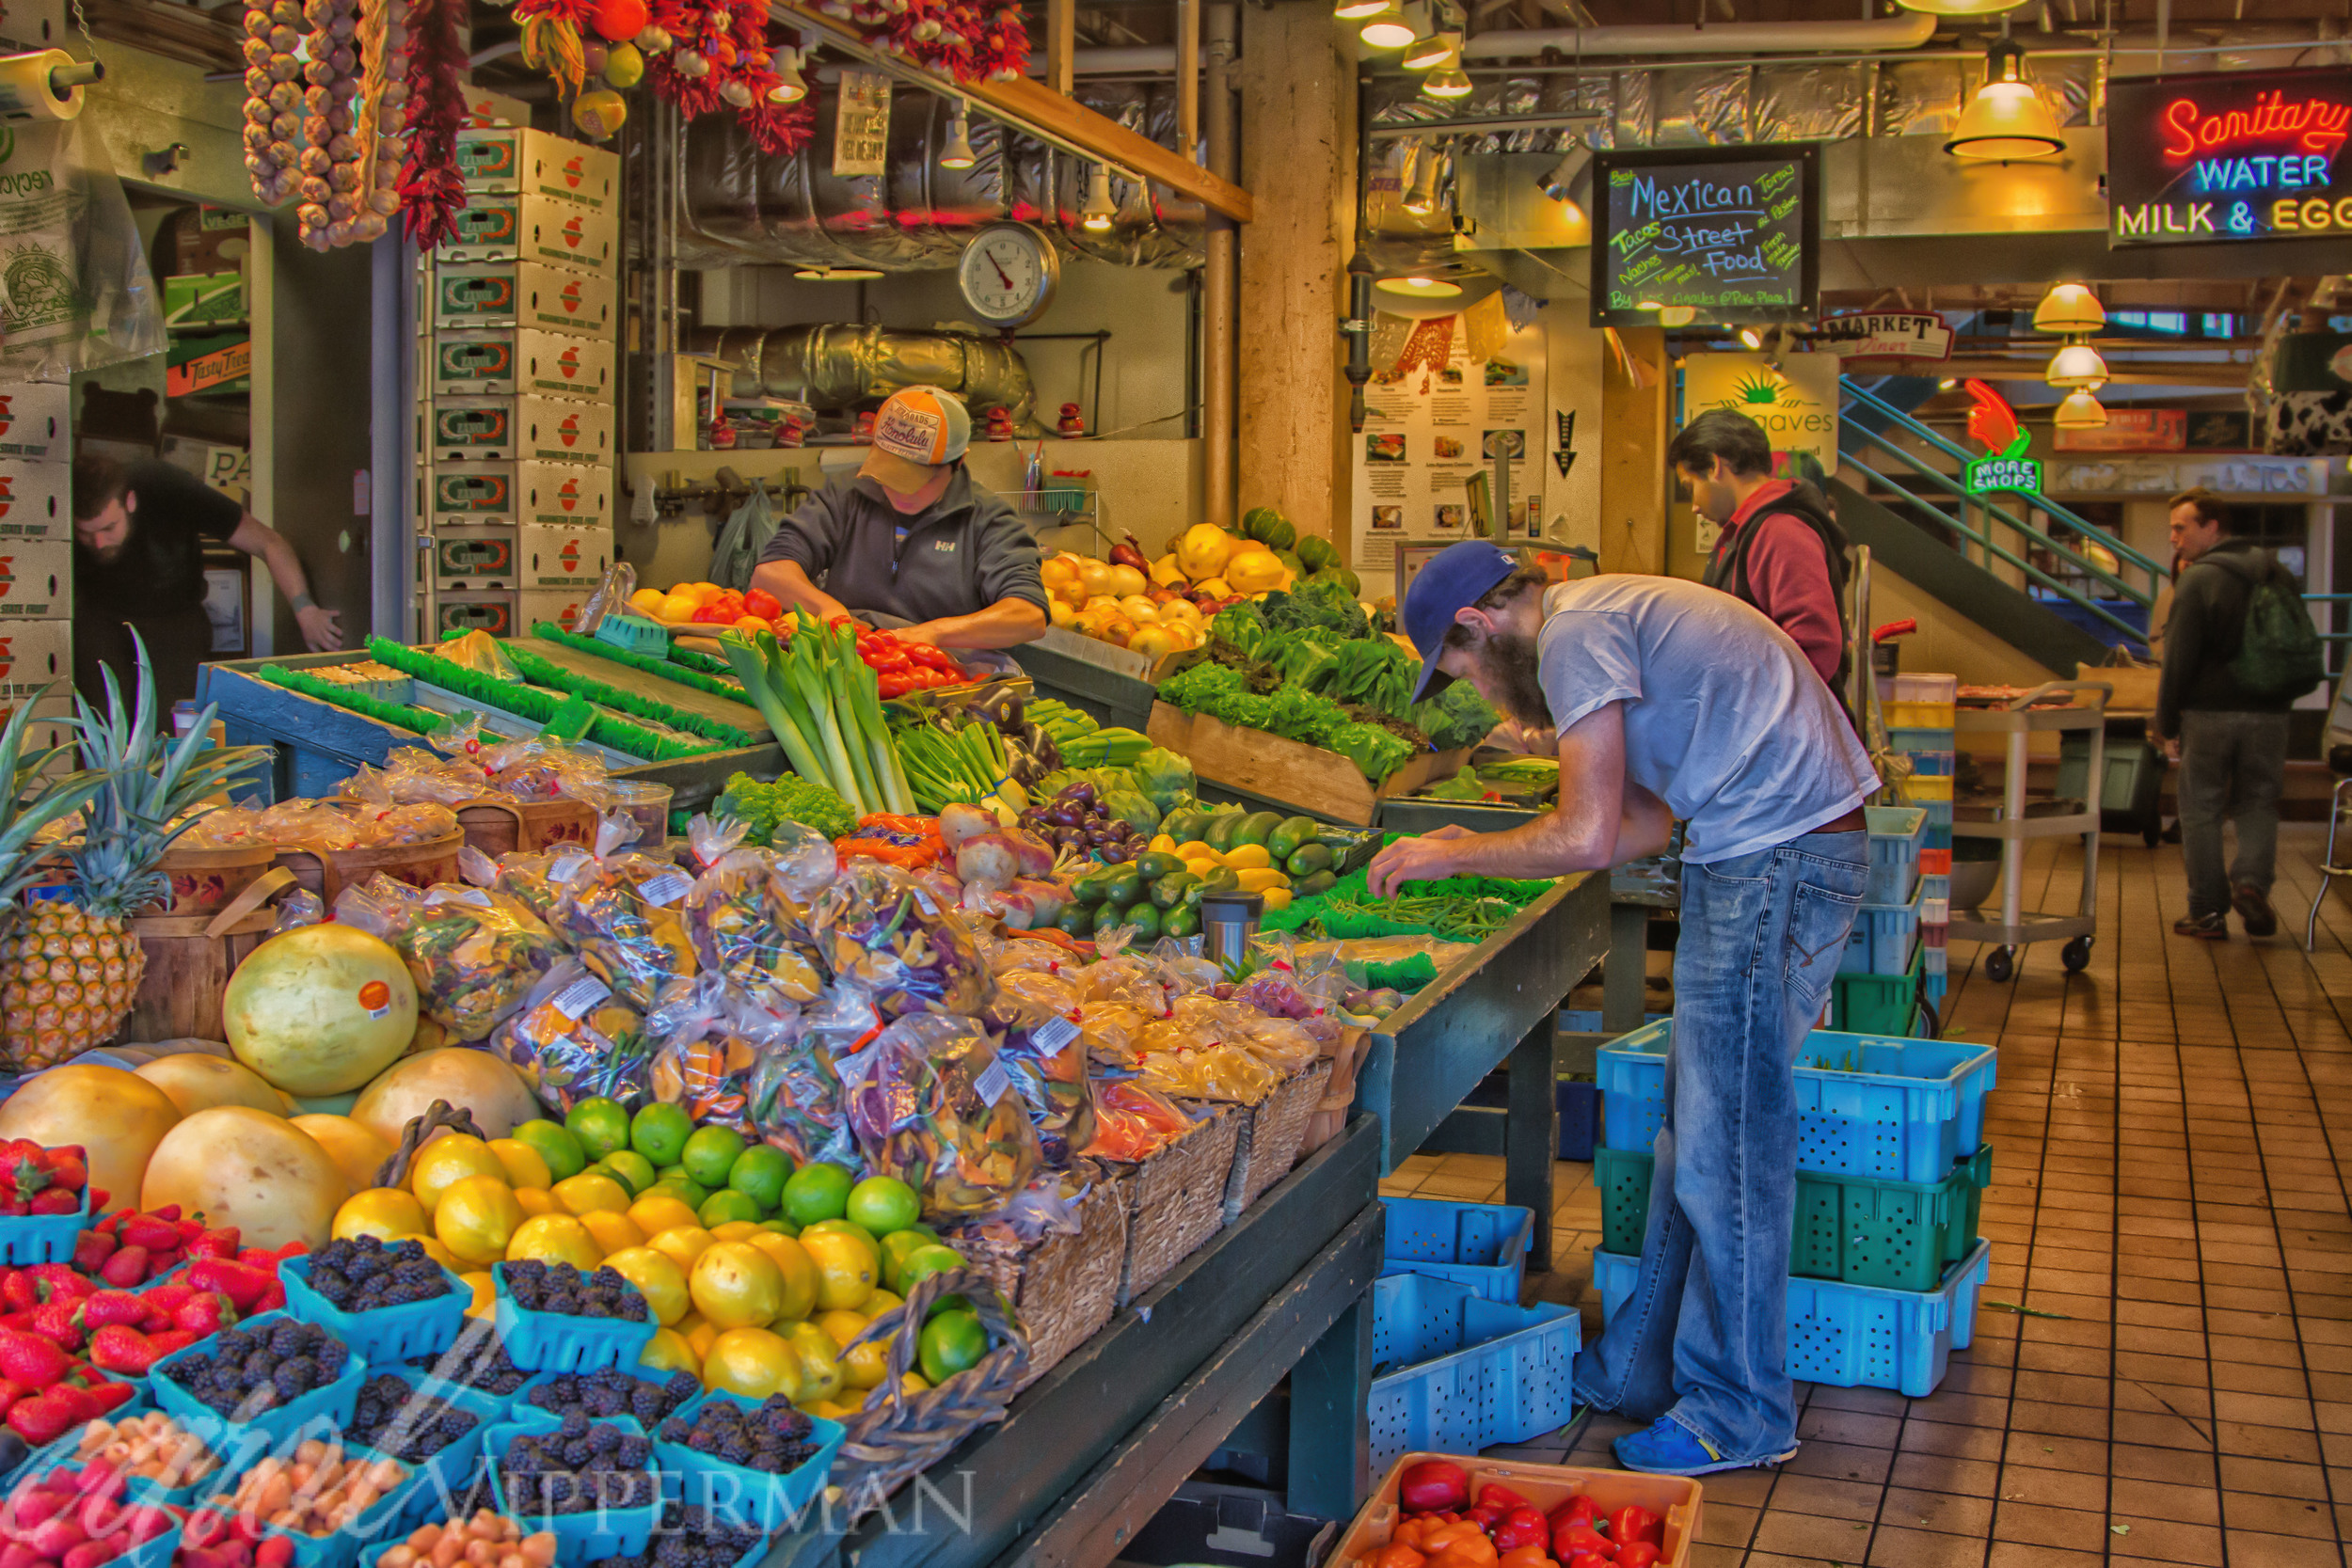 Working at the Market